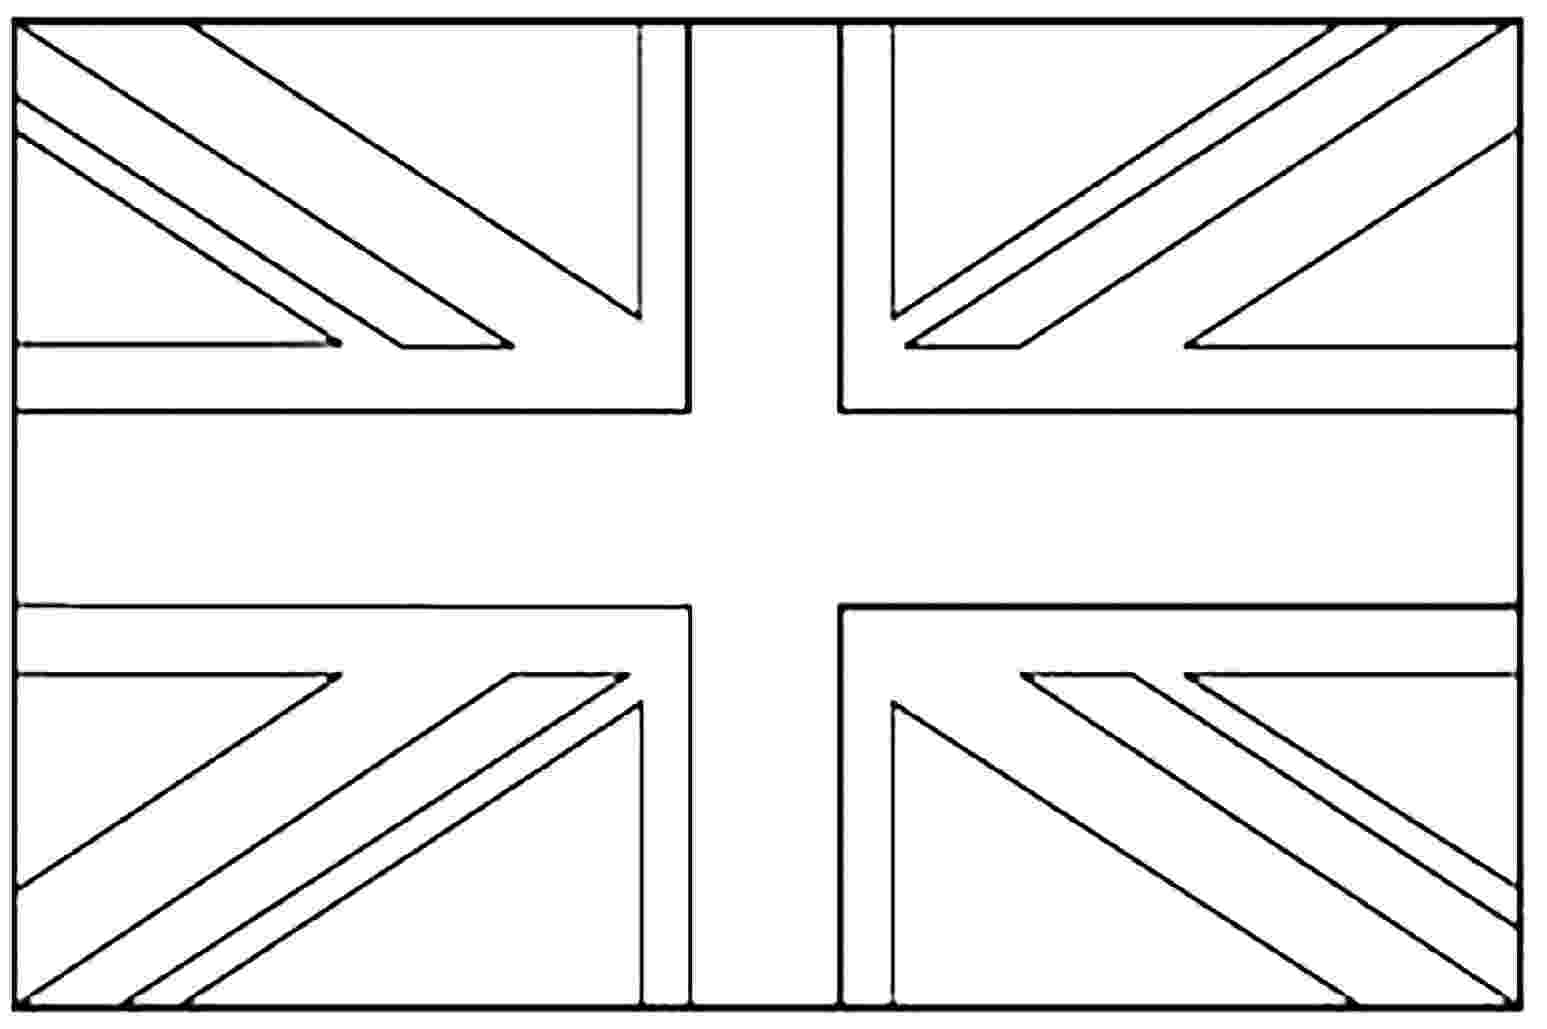 coloring flags 4th of july coloring pages best coloring pages for kids coloring flags